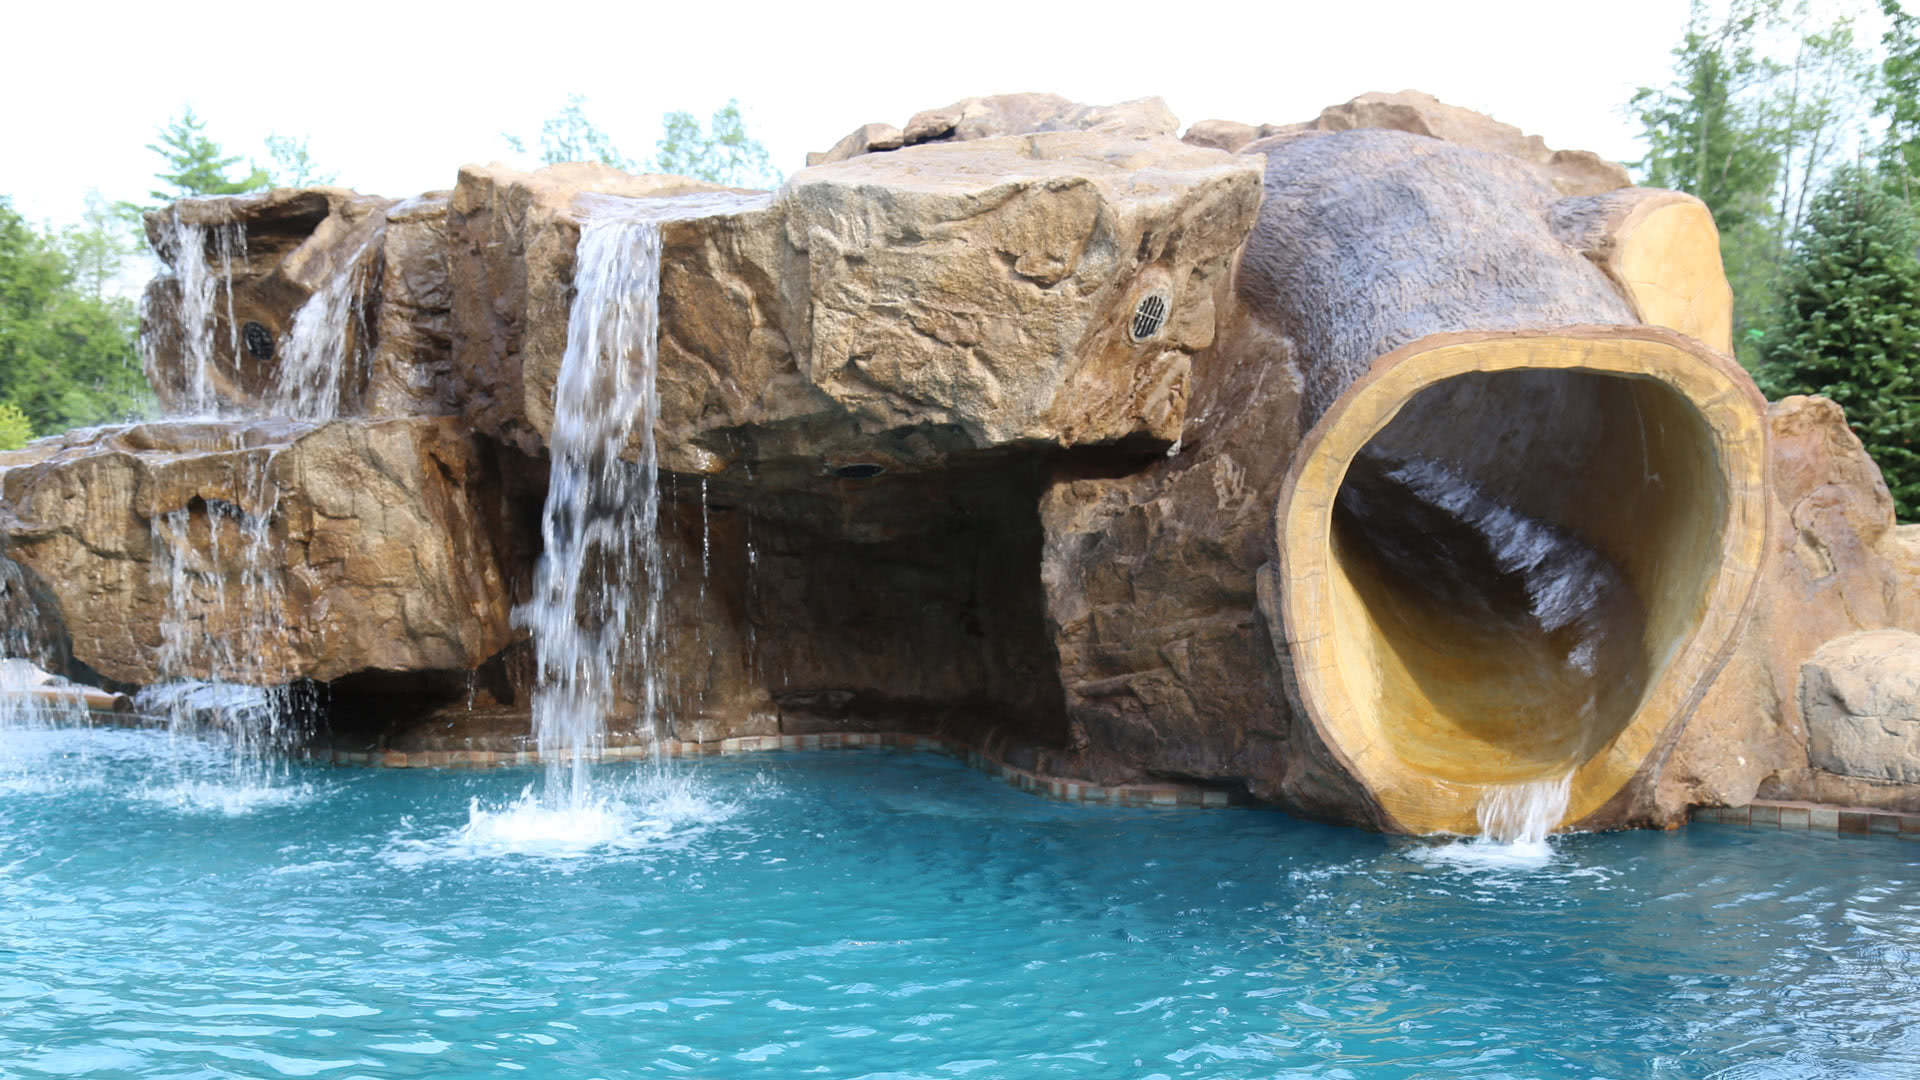 Poolside Water Features Rock Water Slides Waterfalls Grottos Oasis Outdoor Living